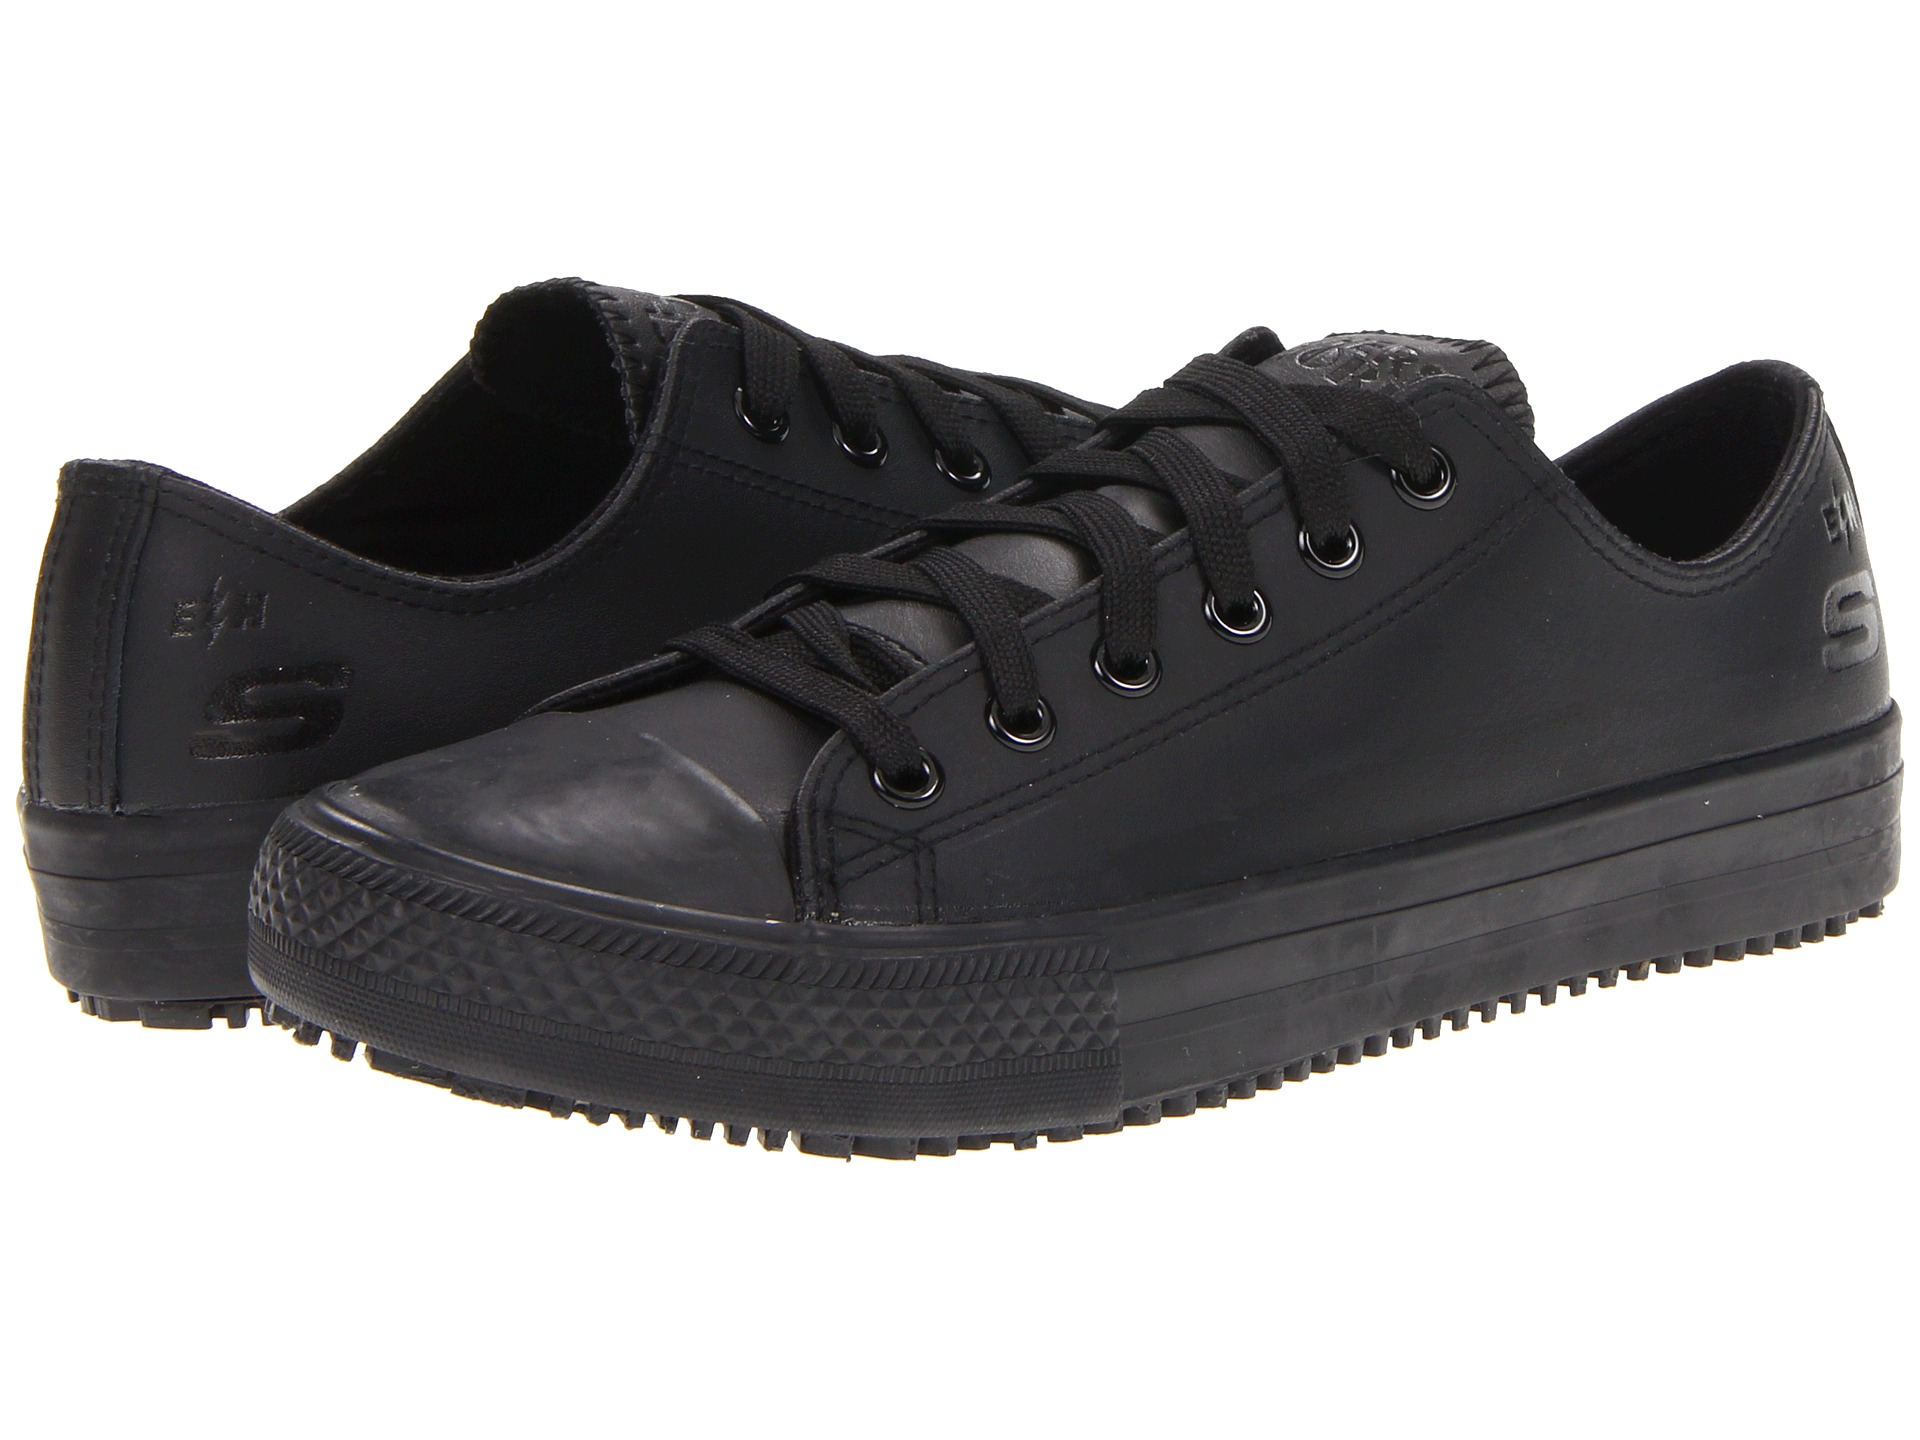 buy skechers non slip shoes gt off76 discounted